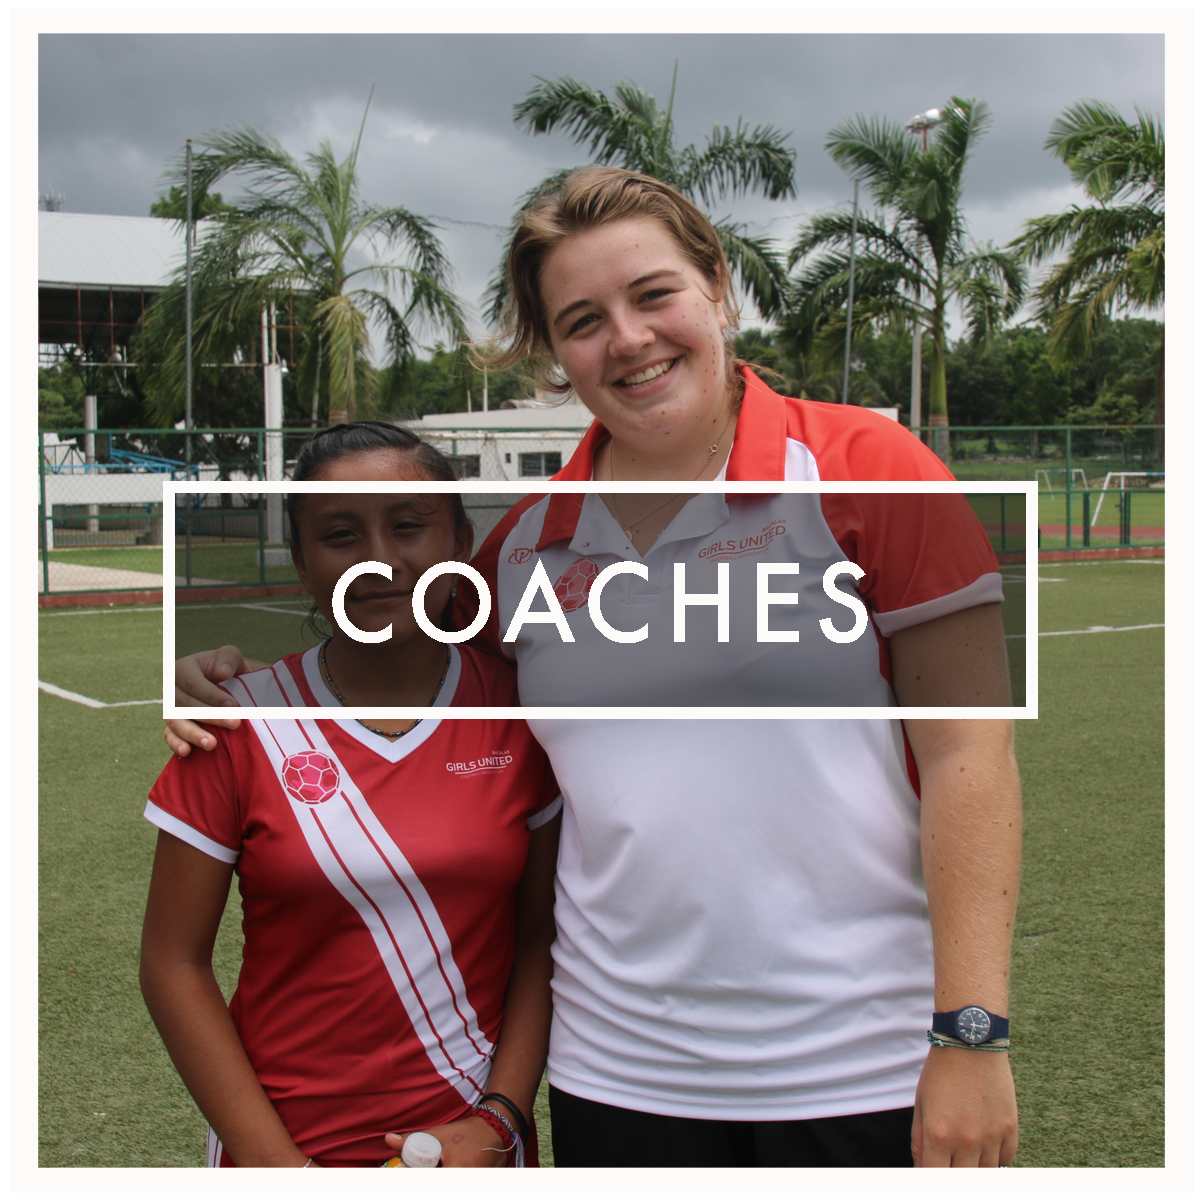 Find out more information and apply to take part in our International Coaching Programme in Mexico